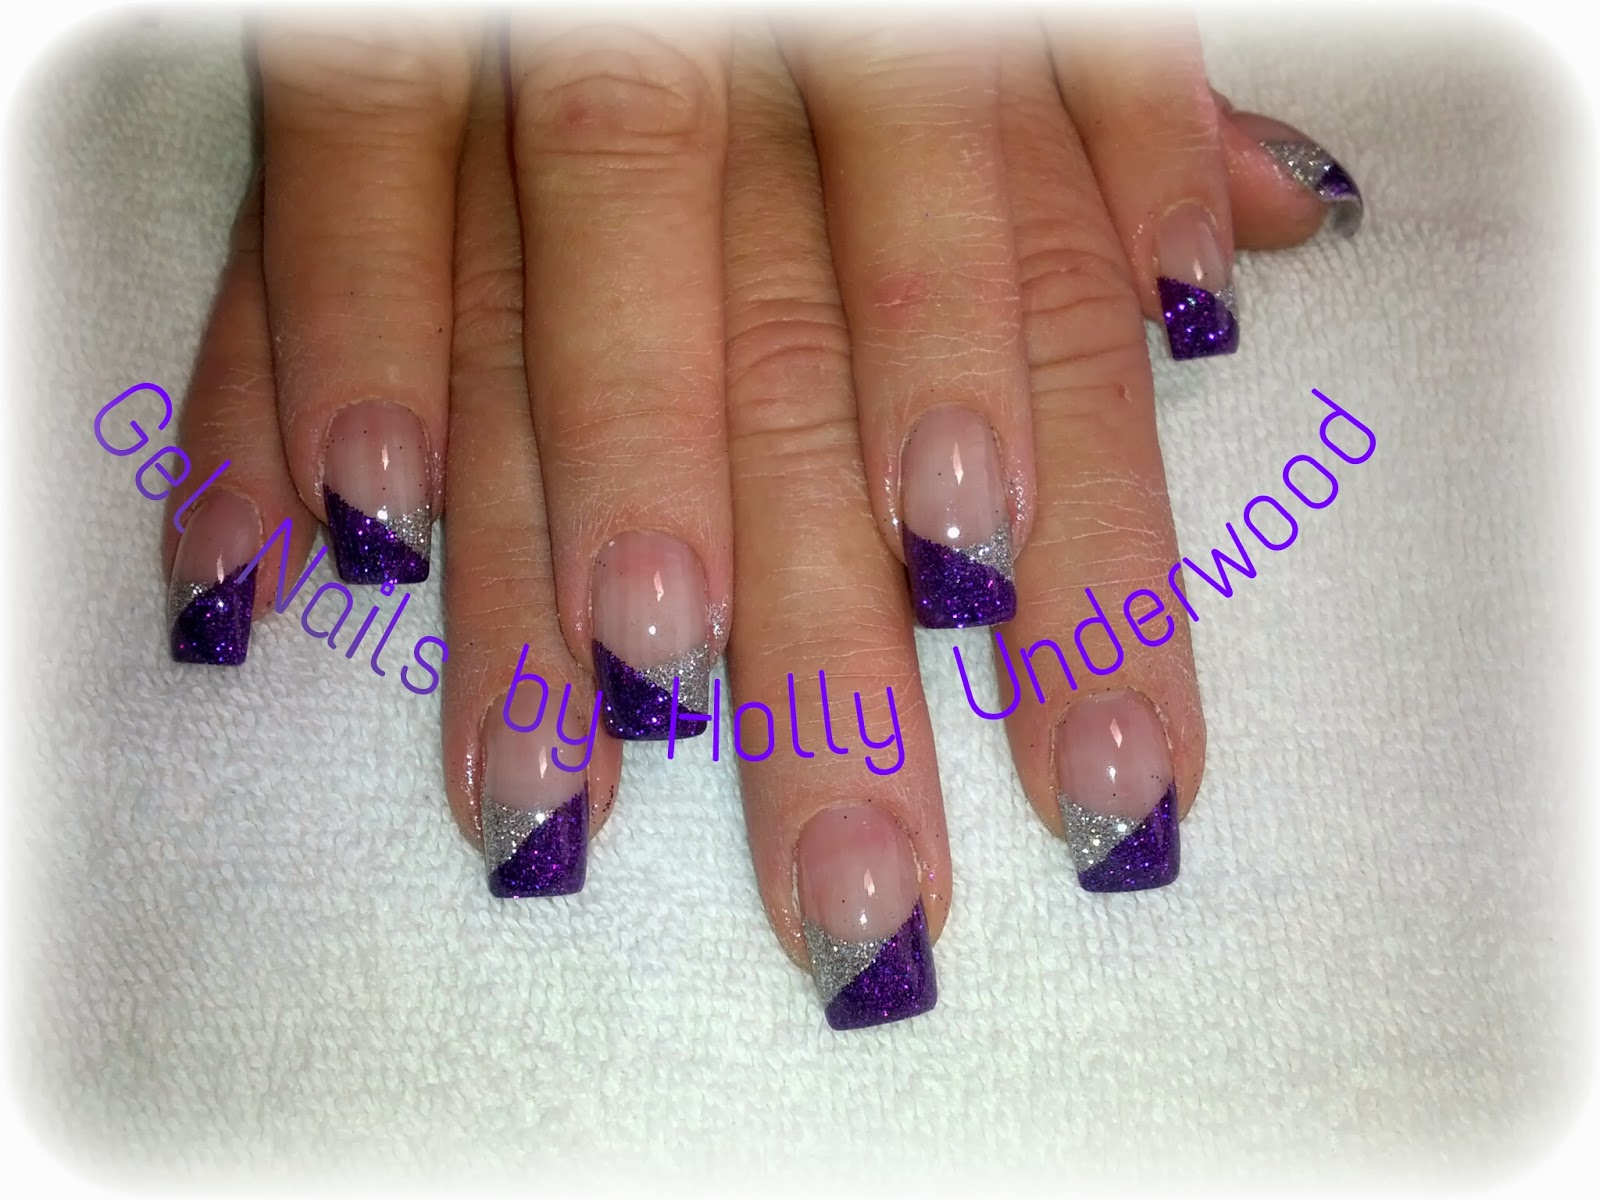 purple and silver Gel Nails in Washington and St George Utah area